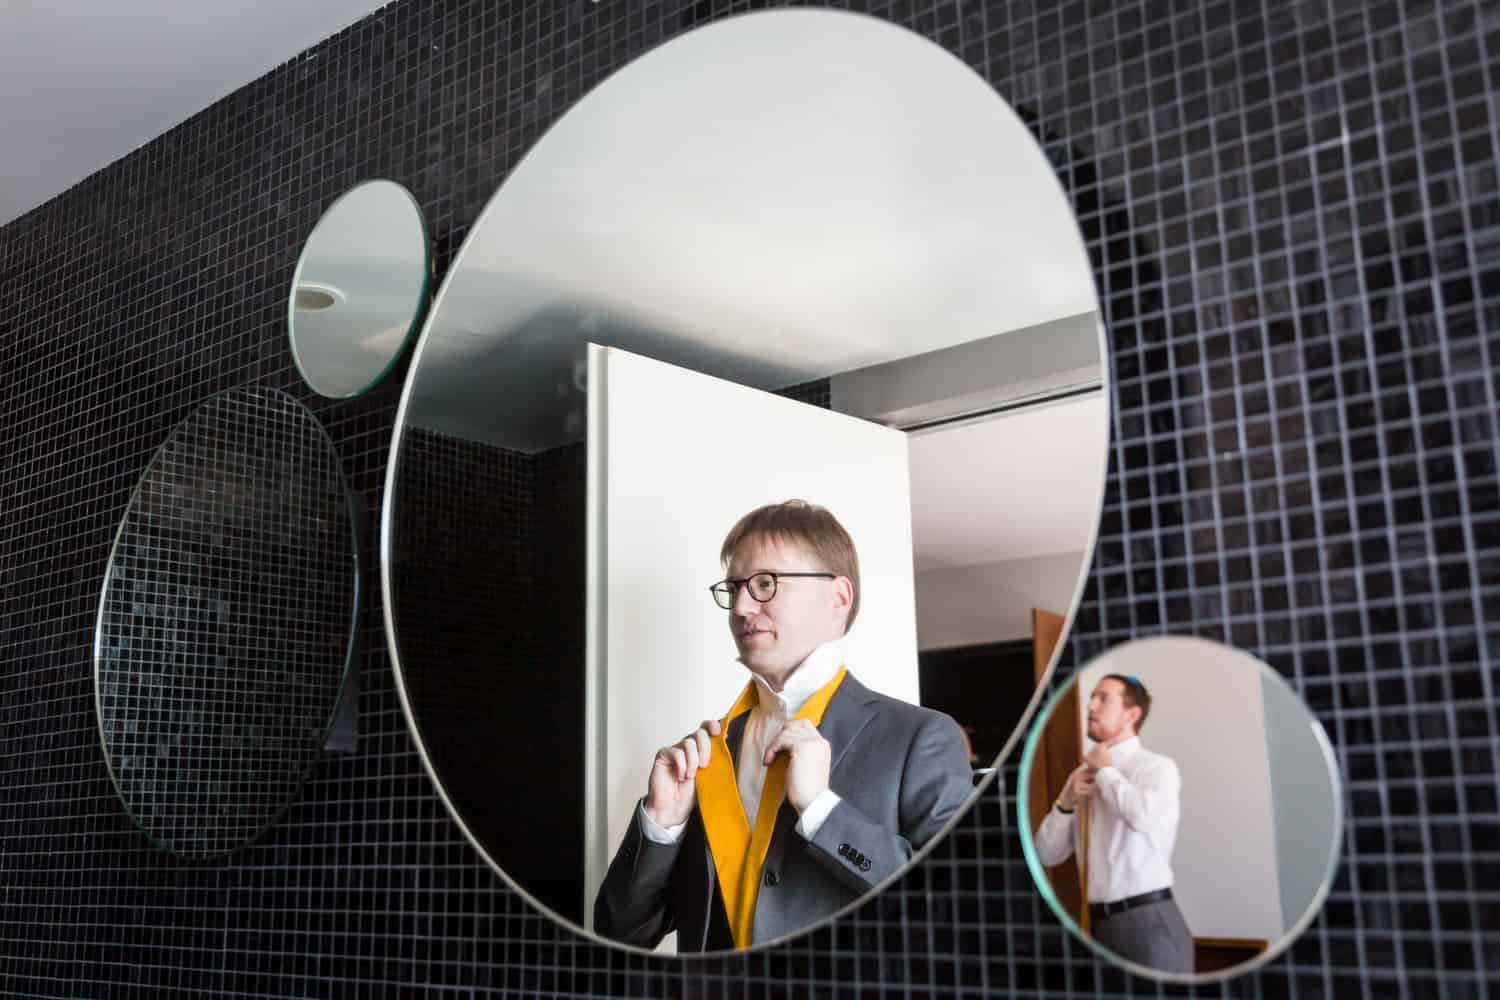 Groom getting ready in mirror with best man reflected in other mirror